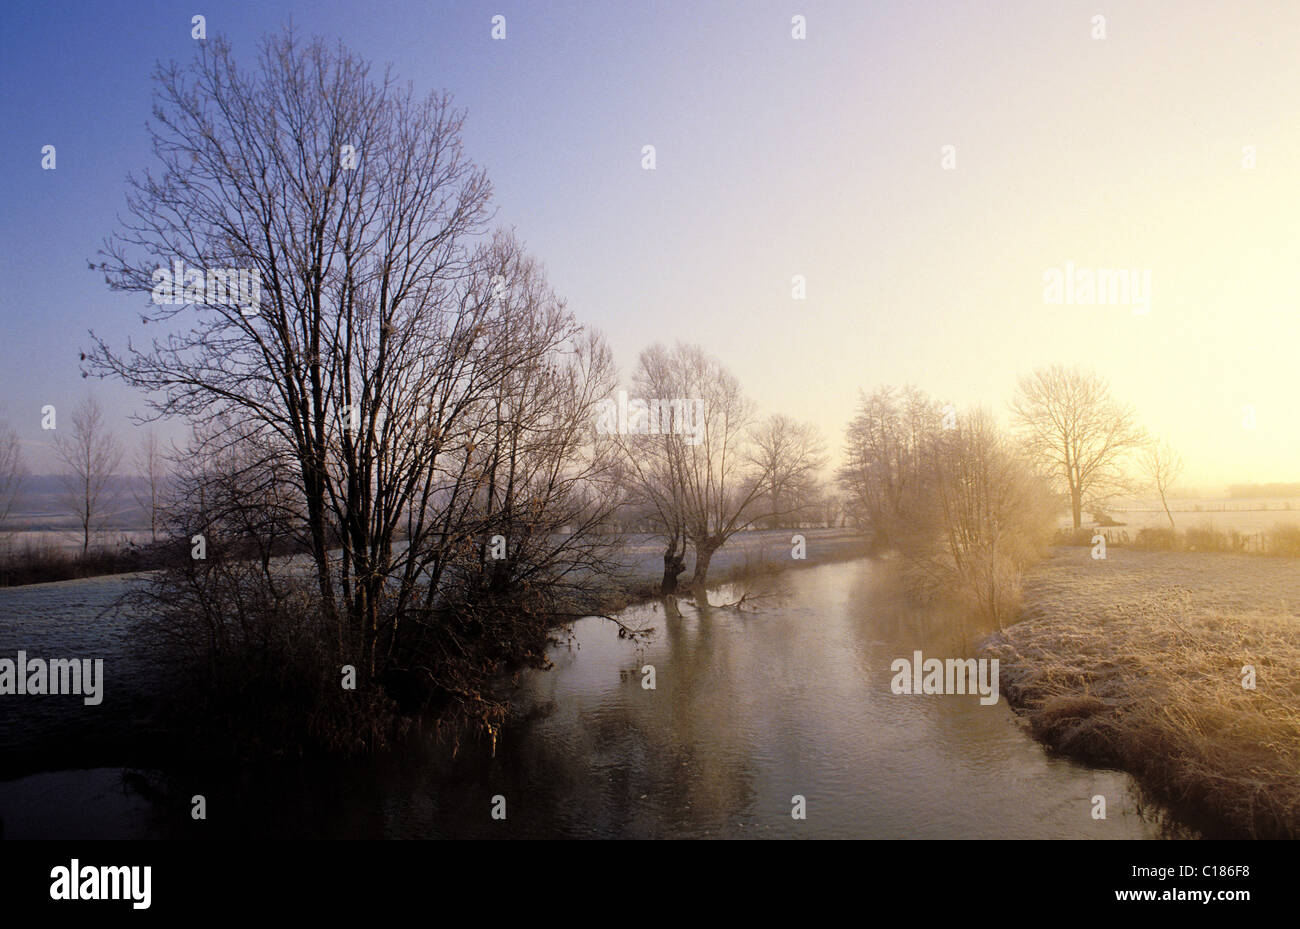 France, Yonne, Avallon region, river at early morning in Winter - Stock Image